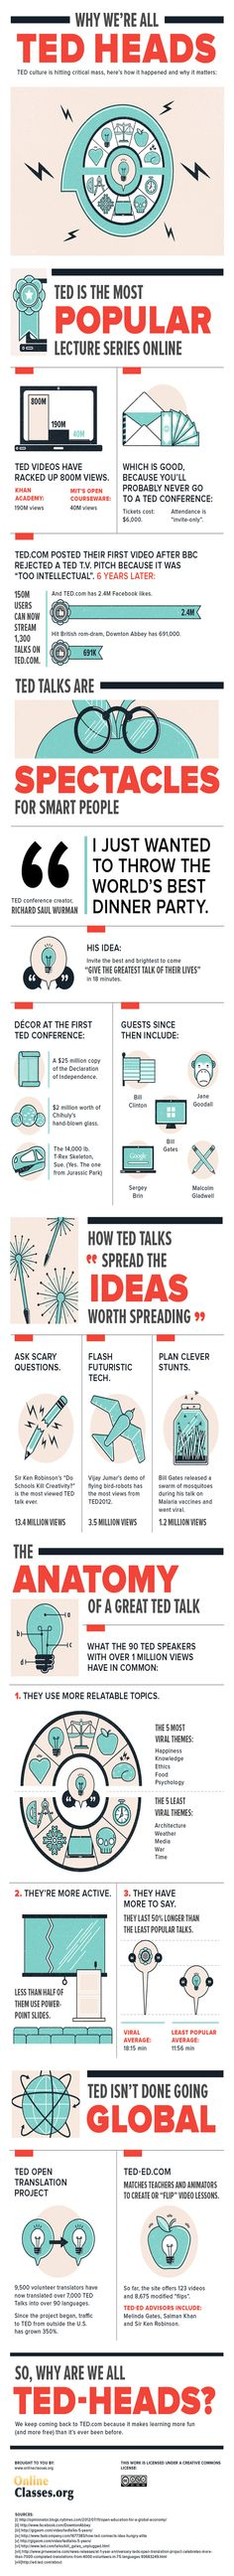 I'm addicted to TEDTalks right now!   TEDTalks: Why we're all TED HEADS [Infographic]